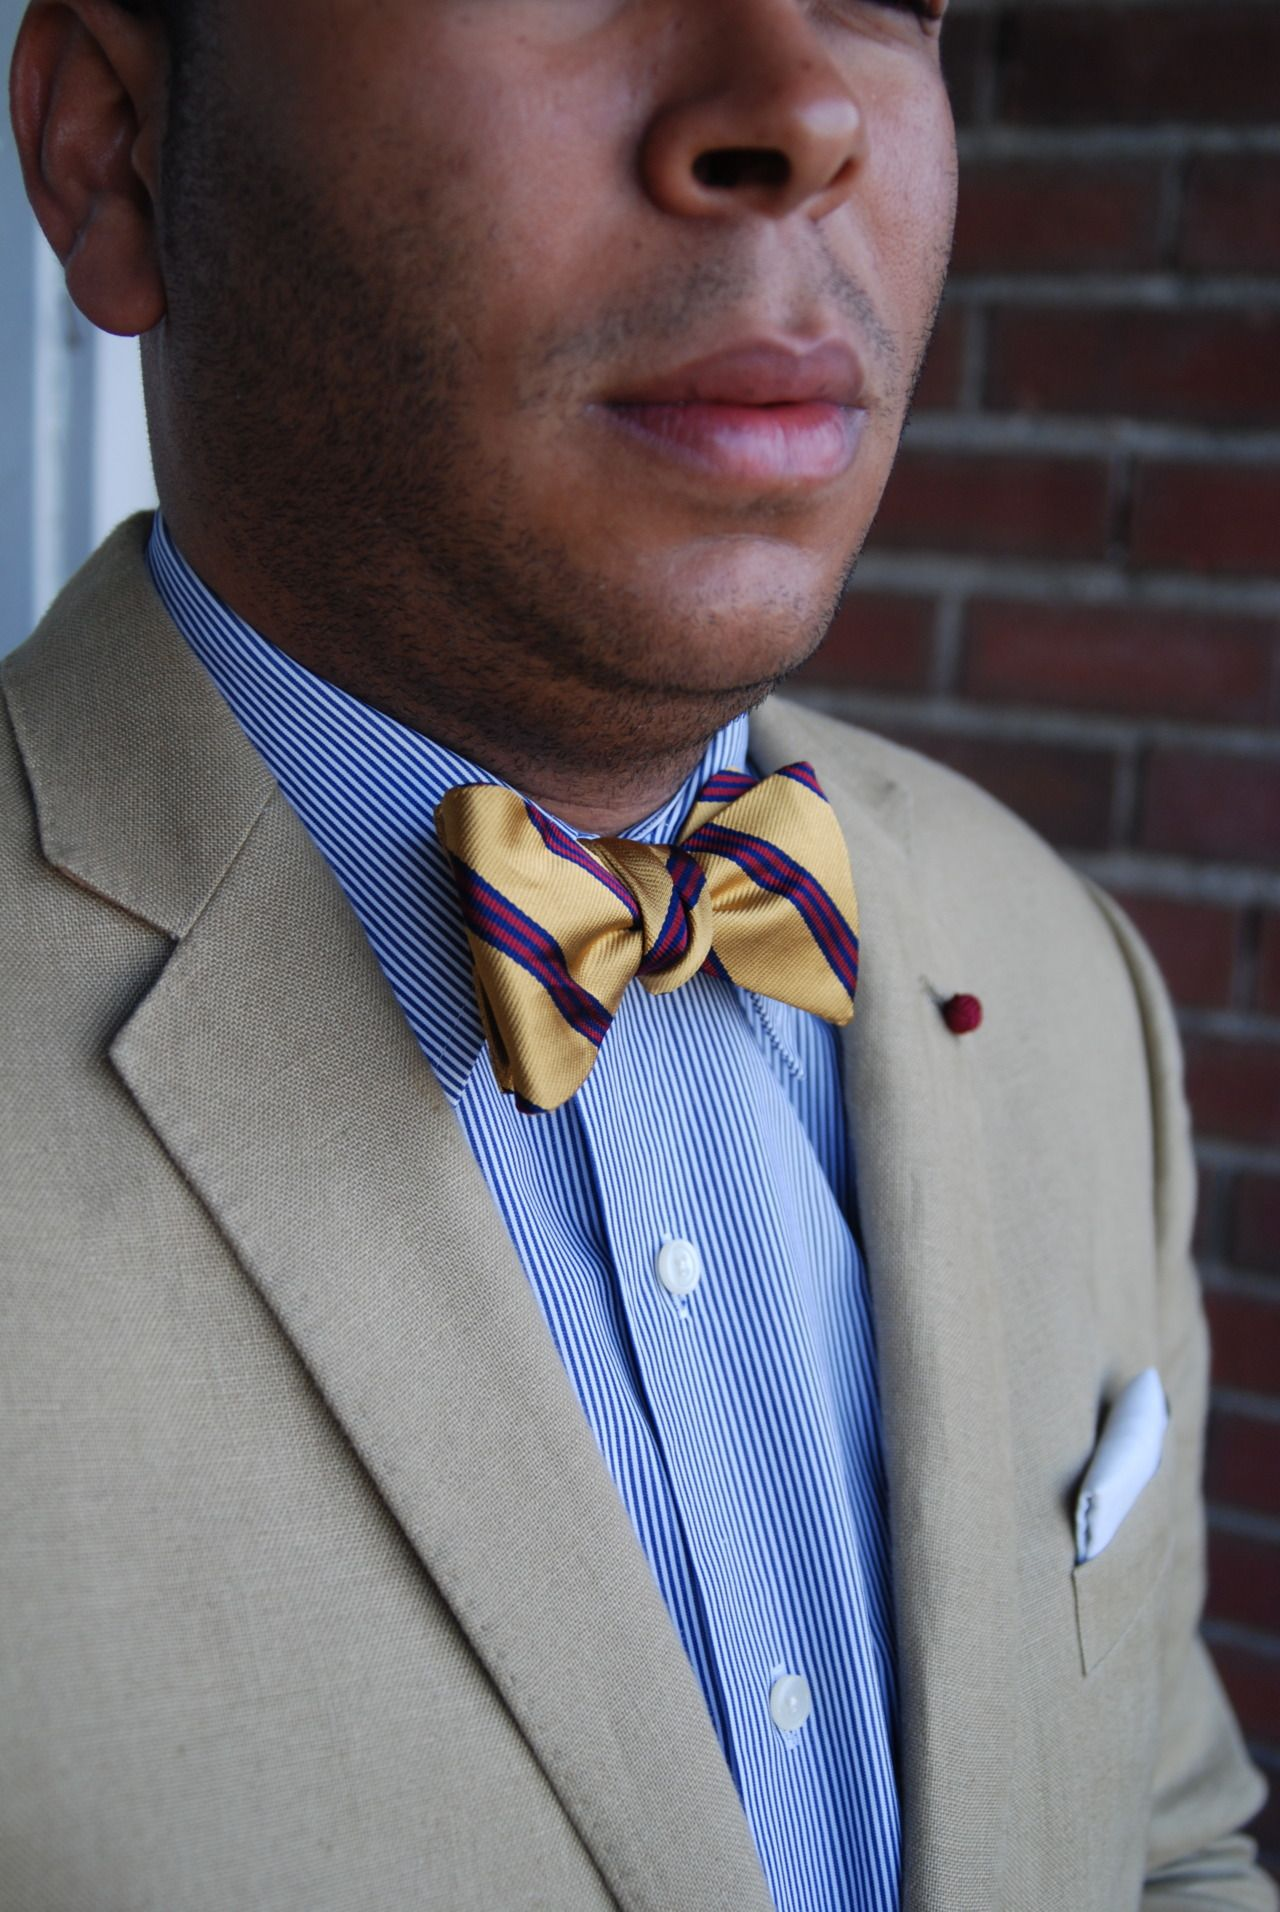 Tan jacket, white shirt with blue stripes, gold bow tie ...